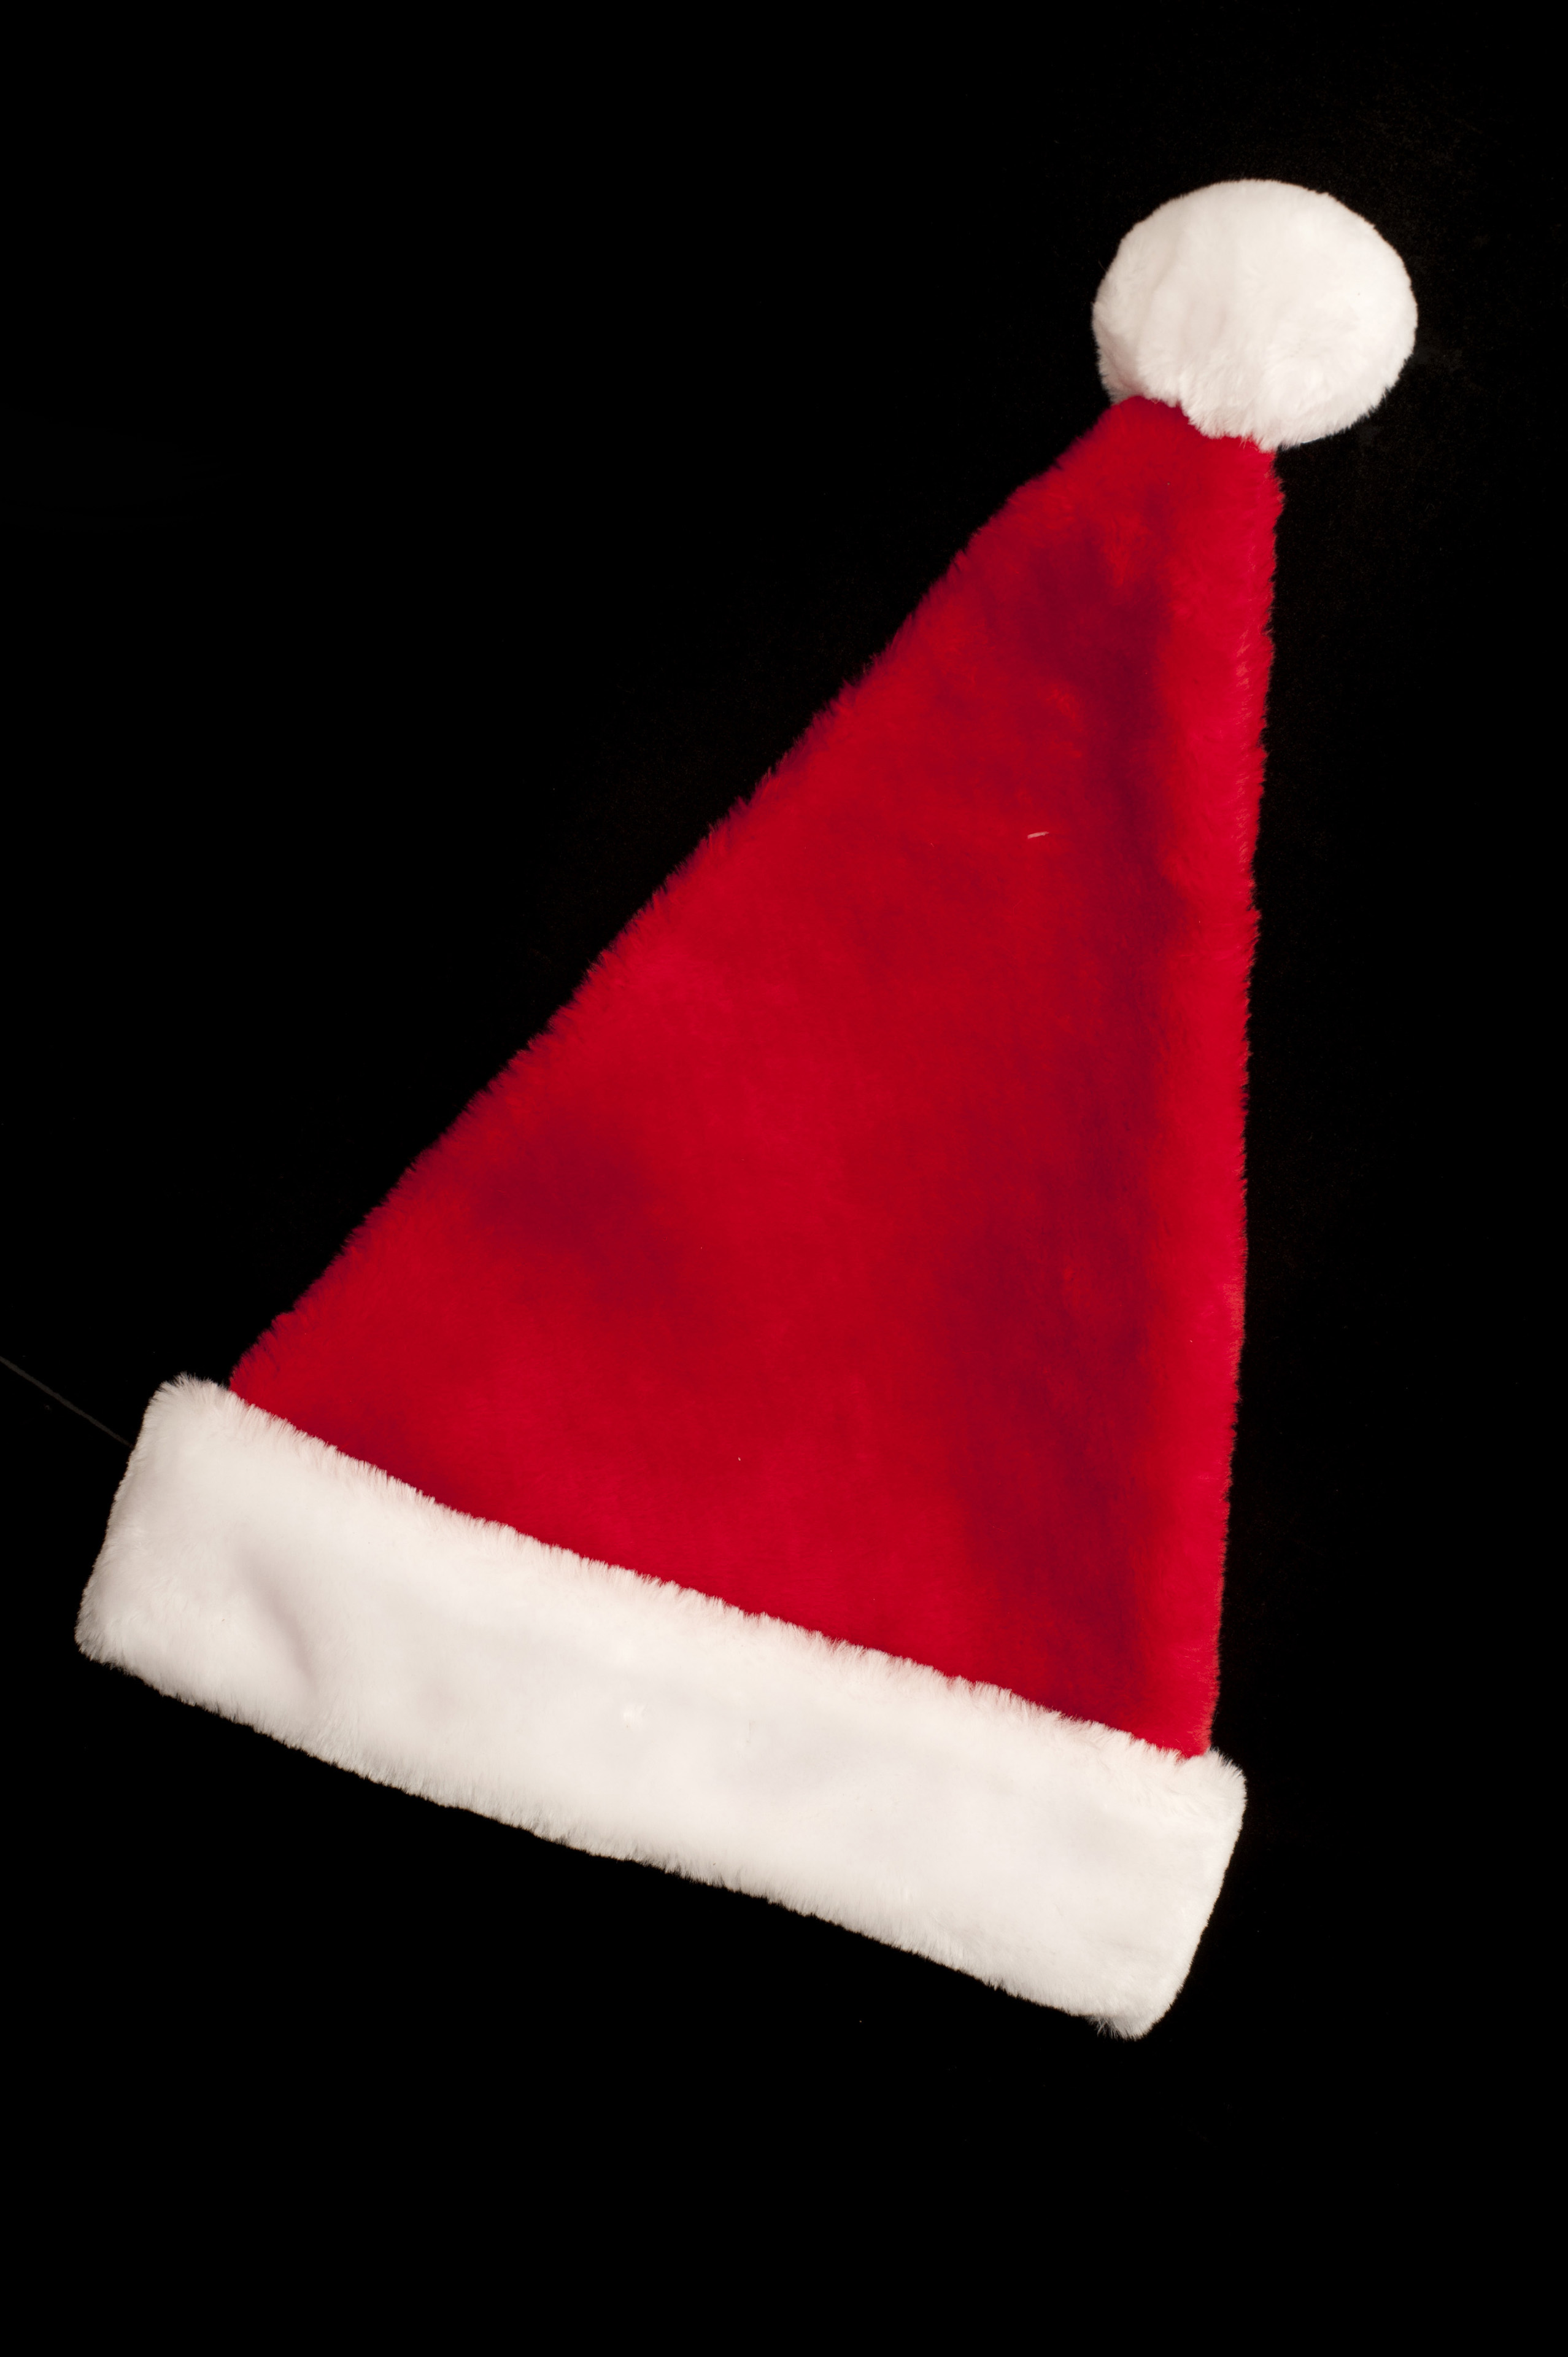 Festive red Christmas Santa hat lying diagonally on a black in vertical format for a holiday background or card